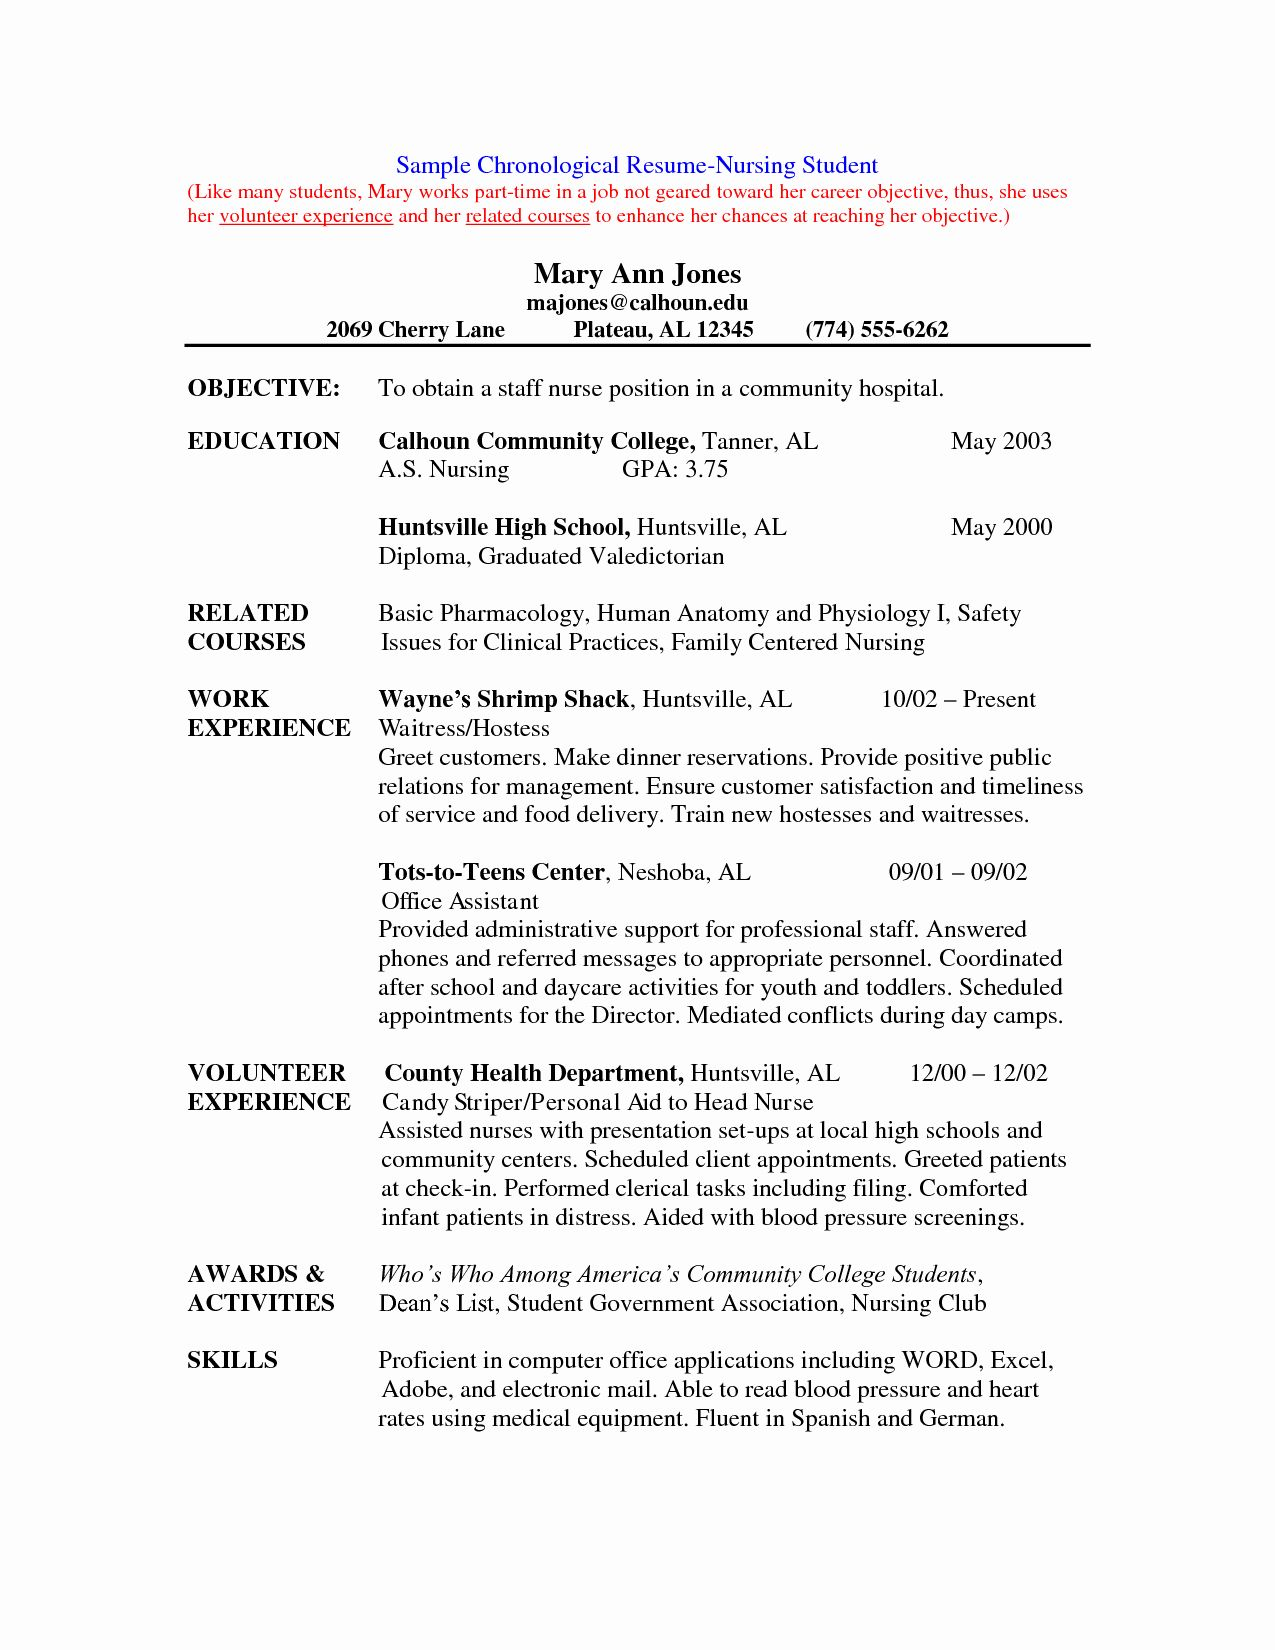 Resume For Graduate School Example Awesome Cover Letters For Nursing Job Application In 2020 Student Nurse Resume Nursing Resume Template Resume Cover Letter Examples